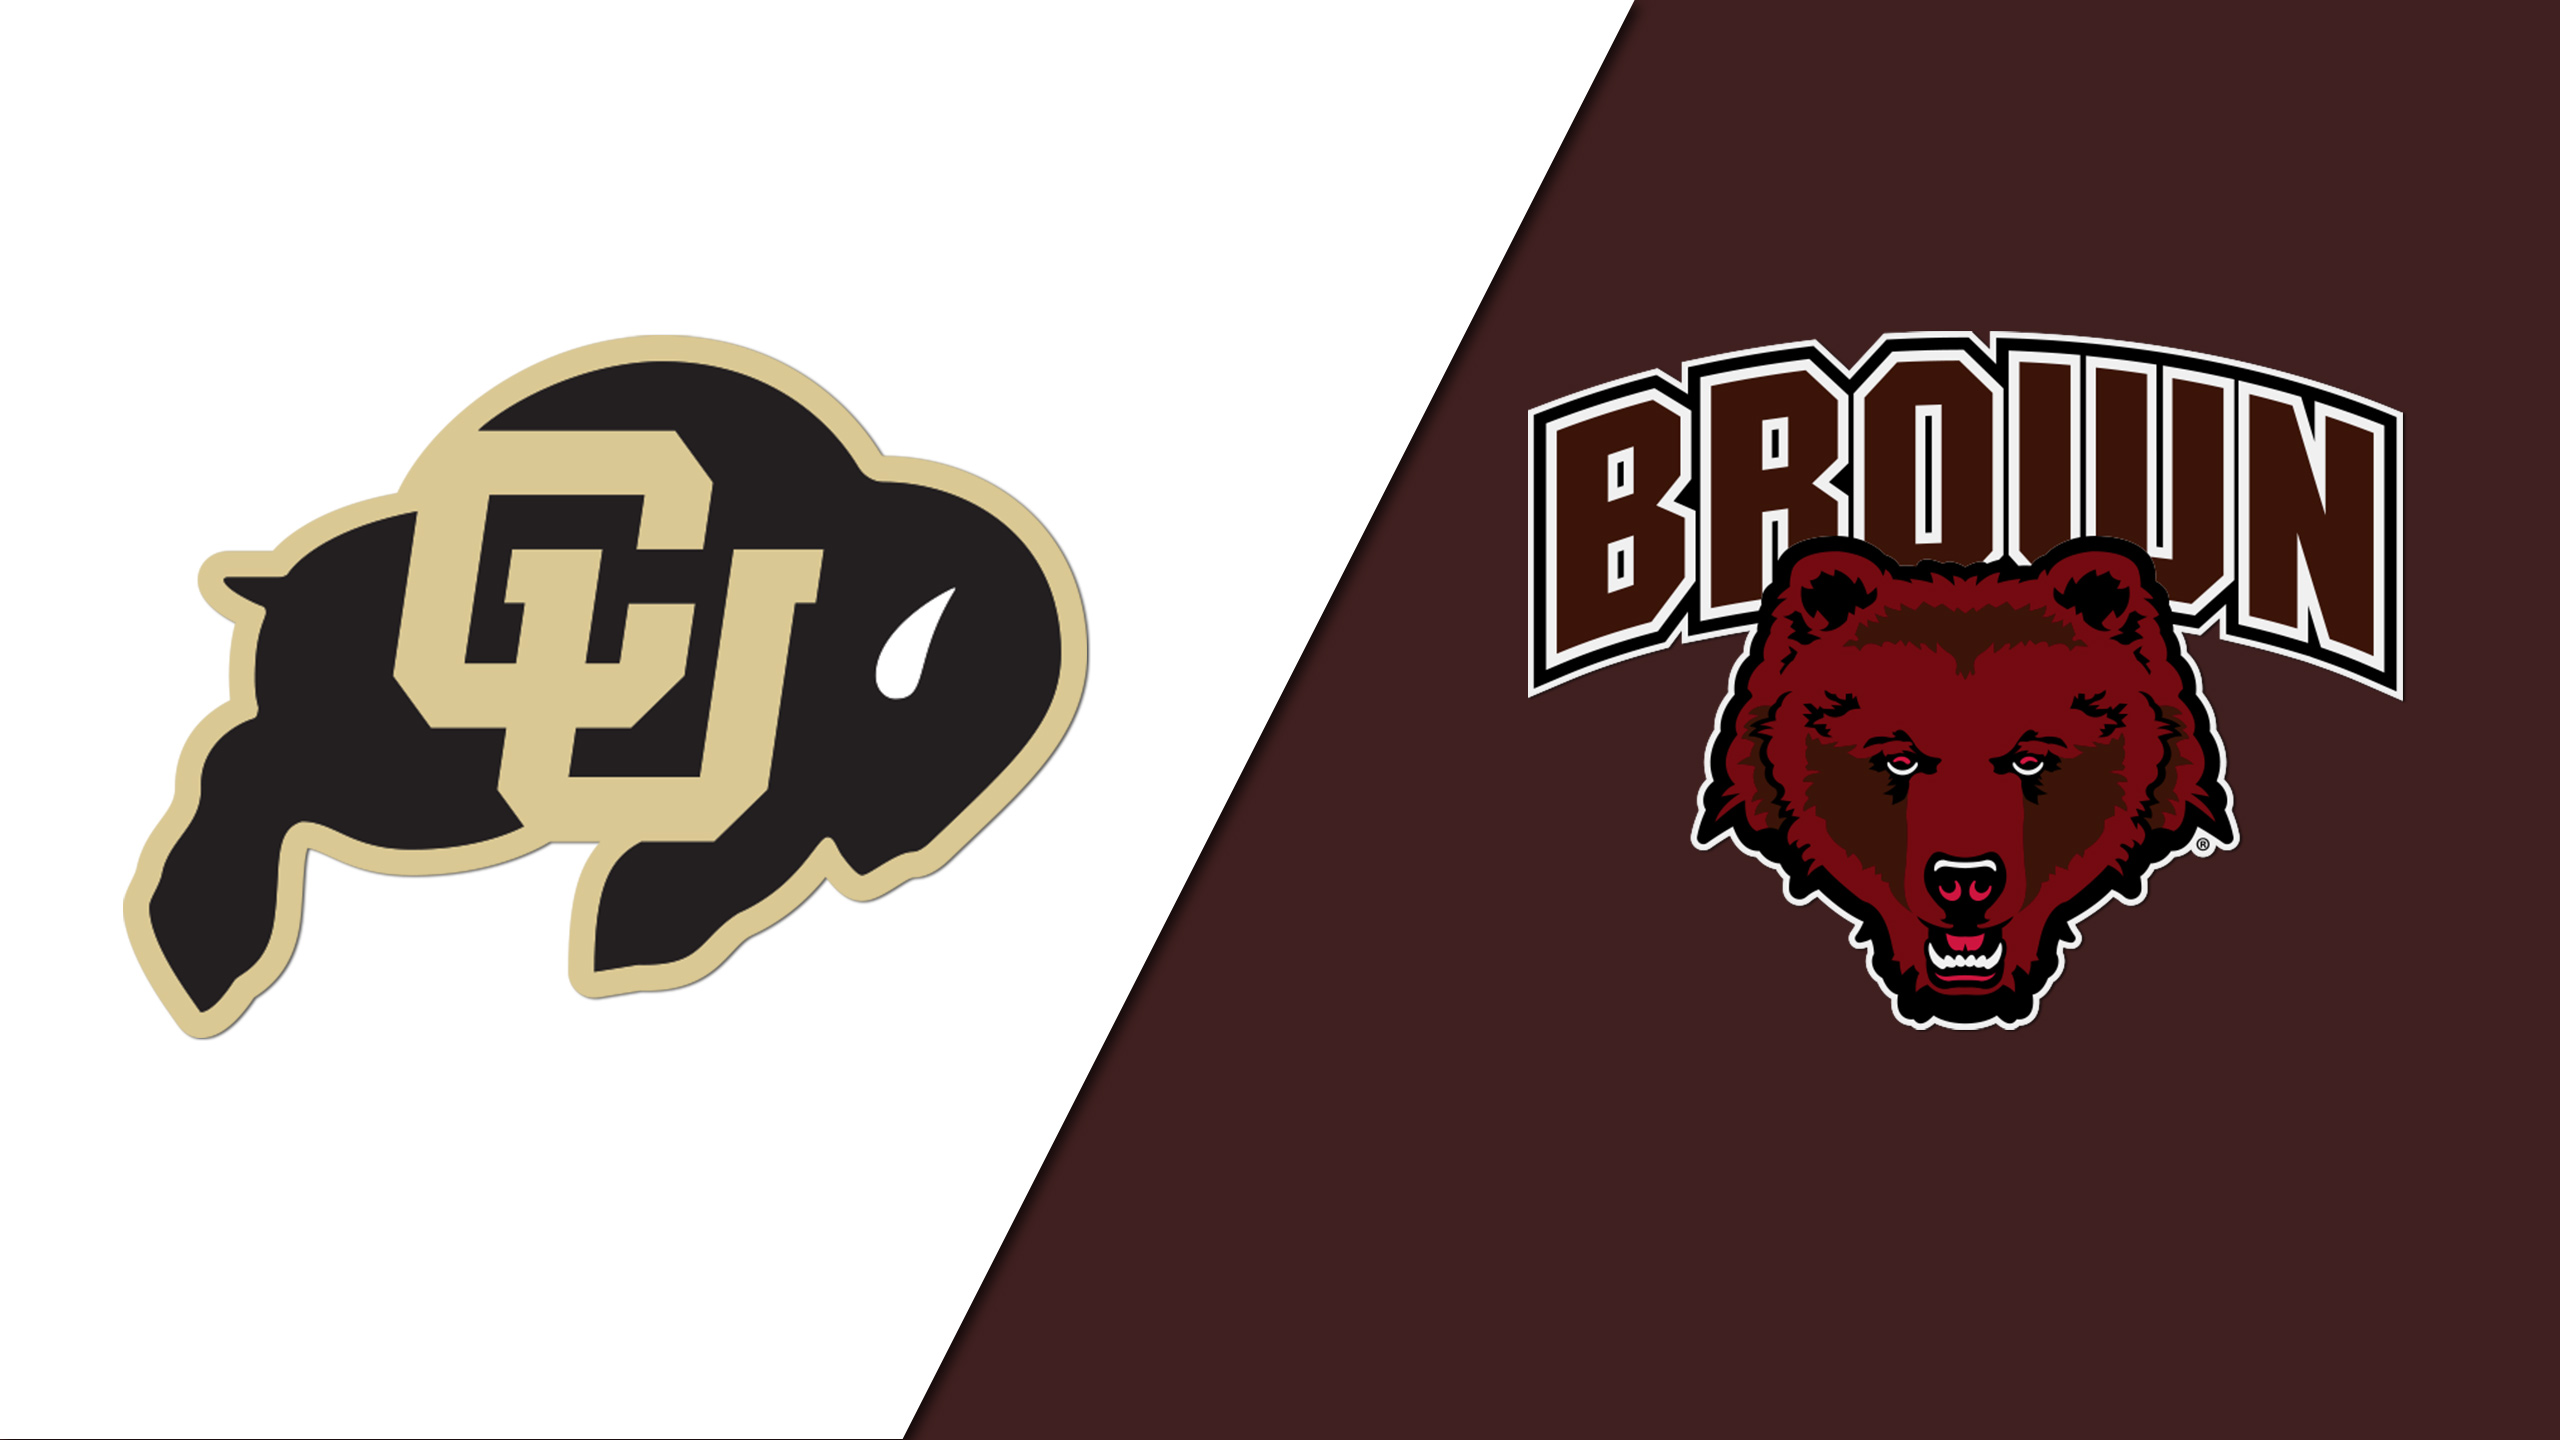 Colorado vs. Brown (Men's Semifinal #1)